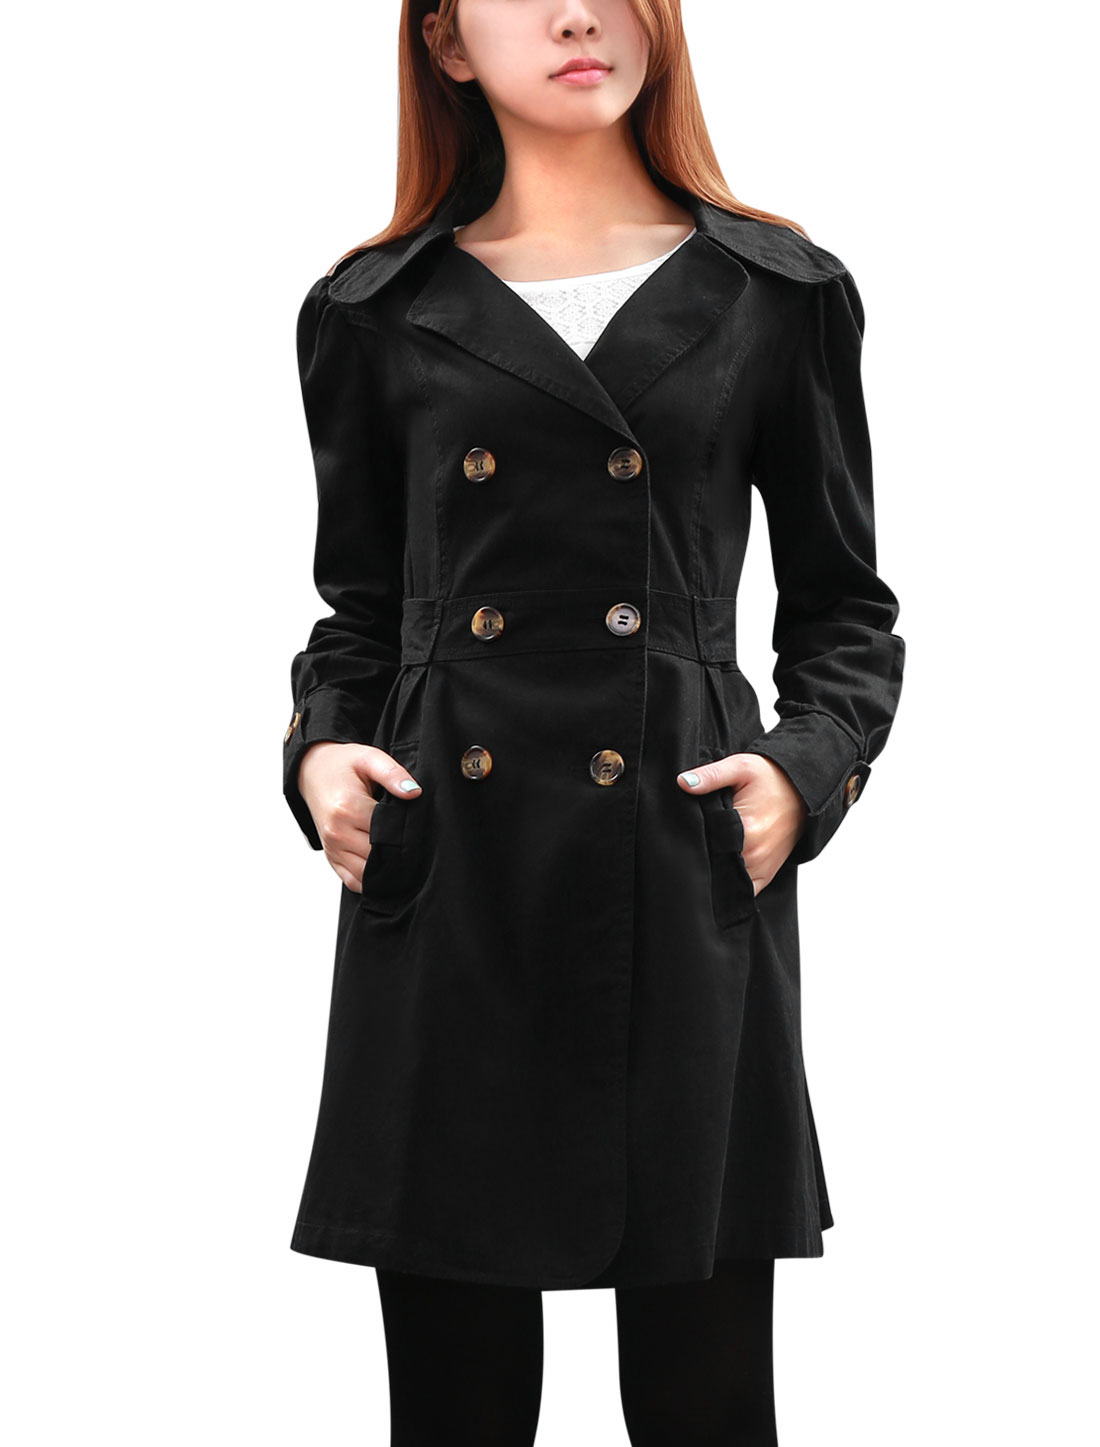 Women Self Tie Strap Button-tab Cuffs Cool Trench Jacket Black L